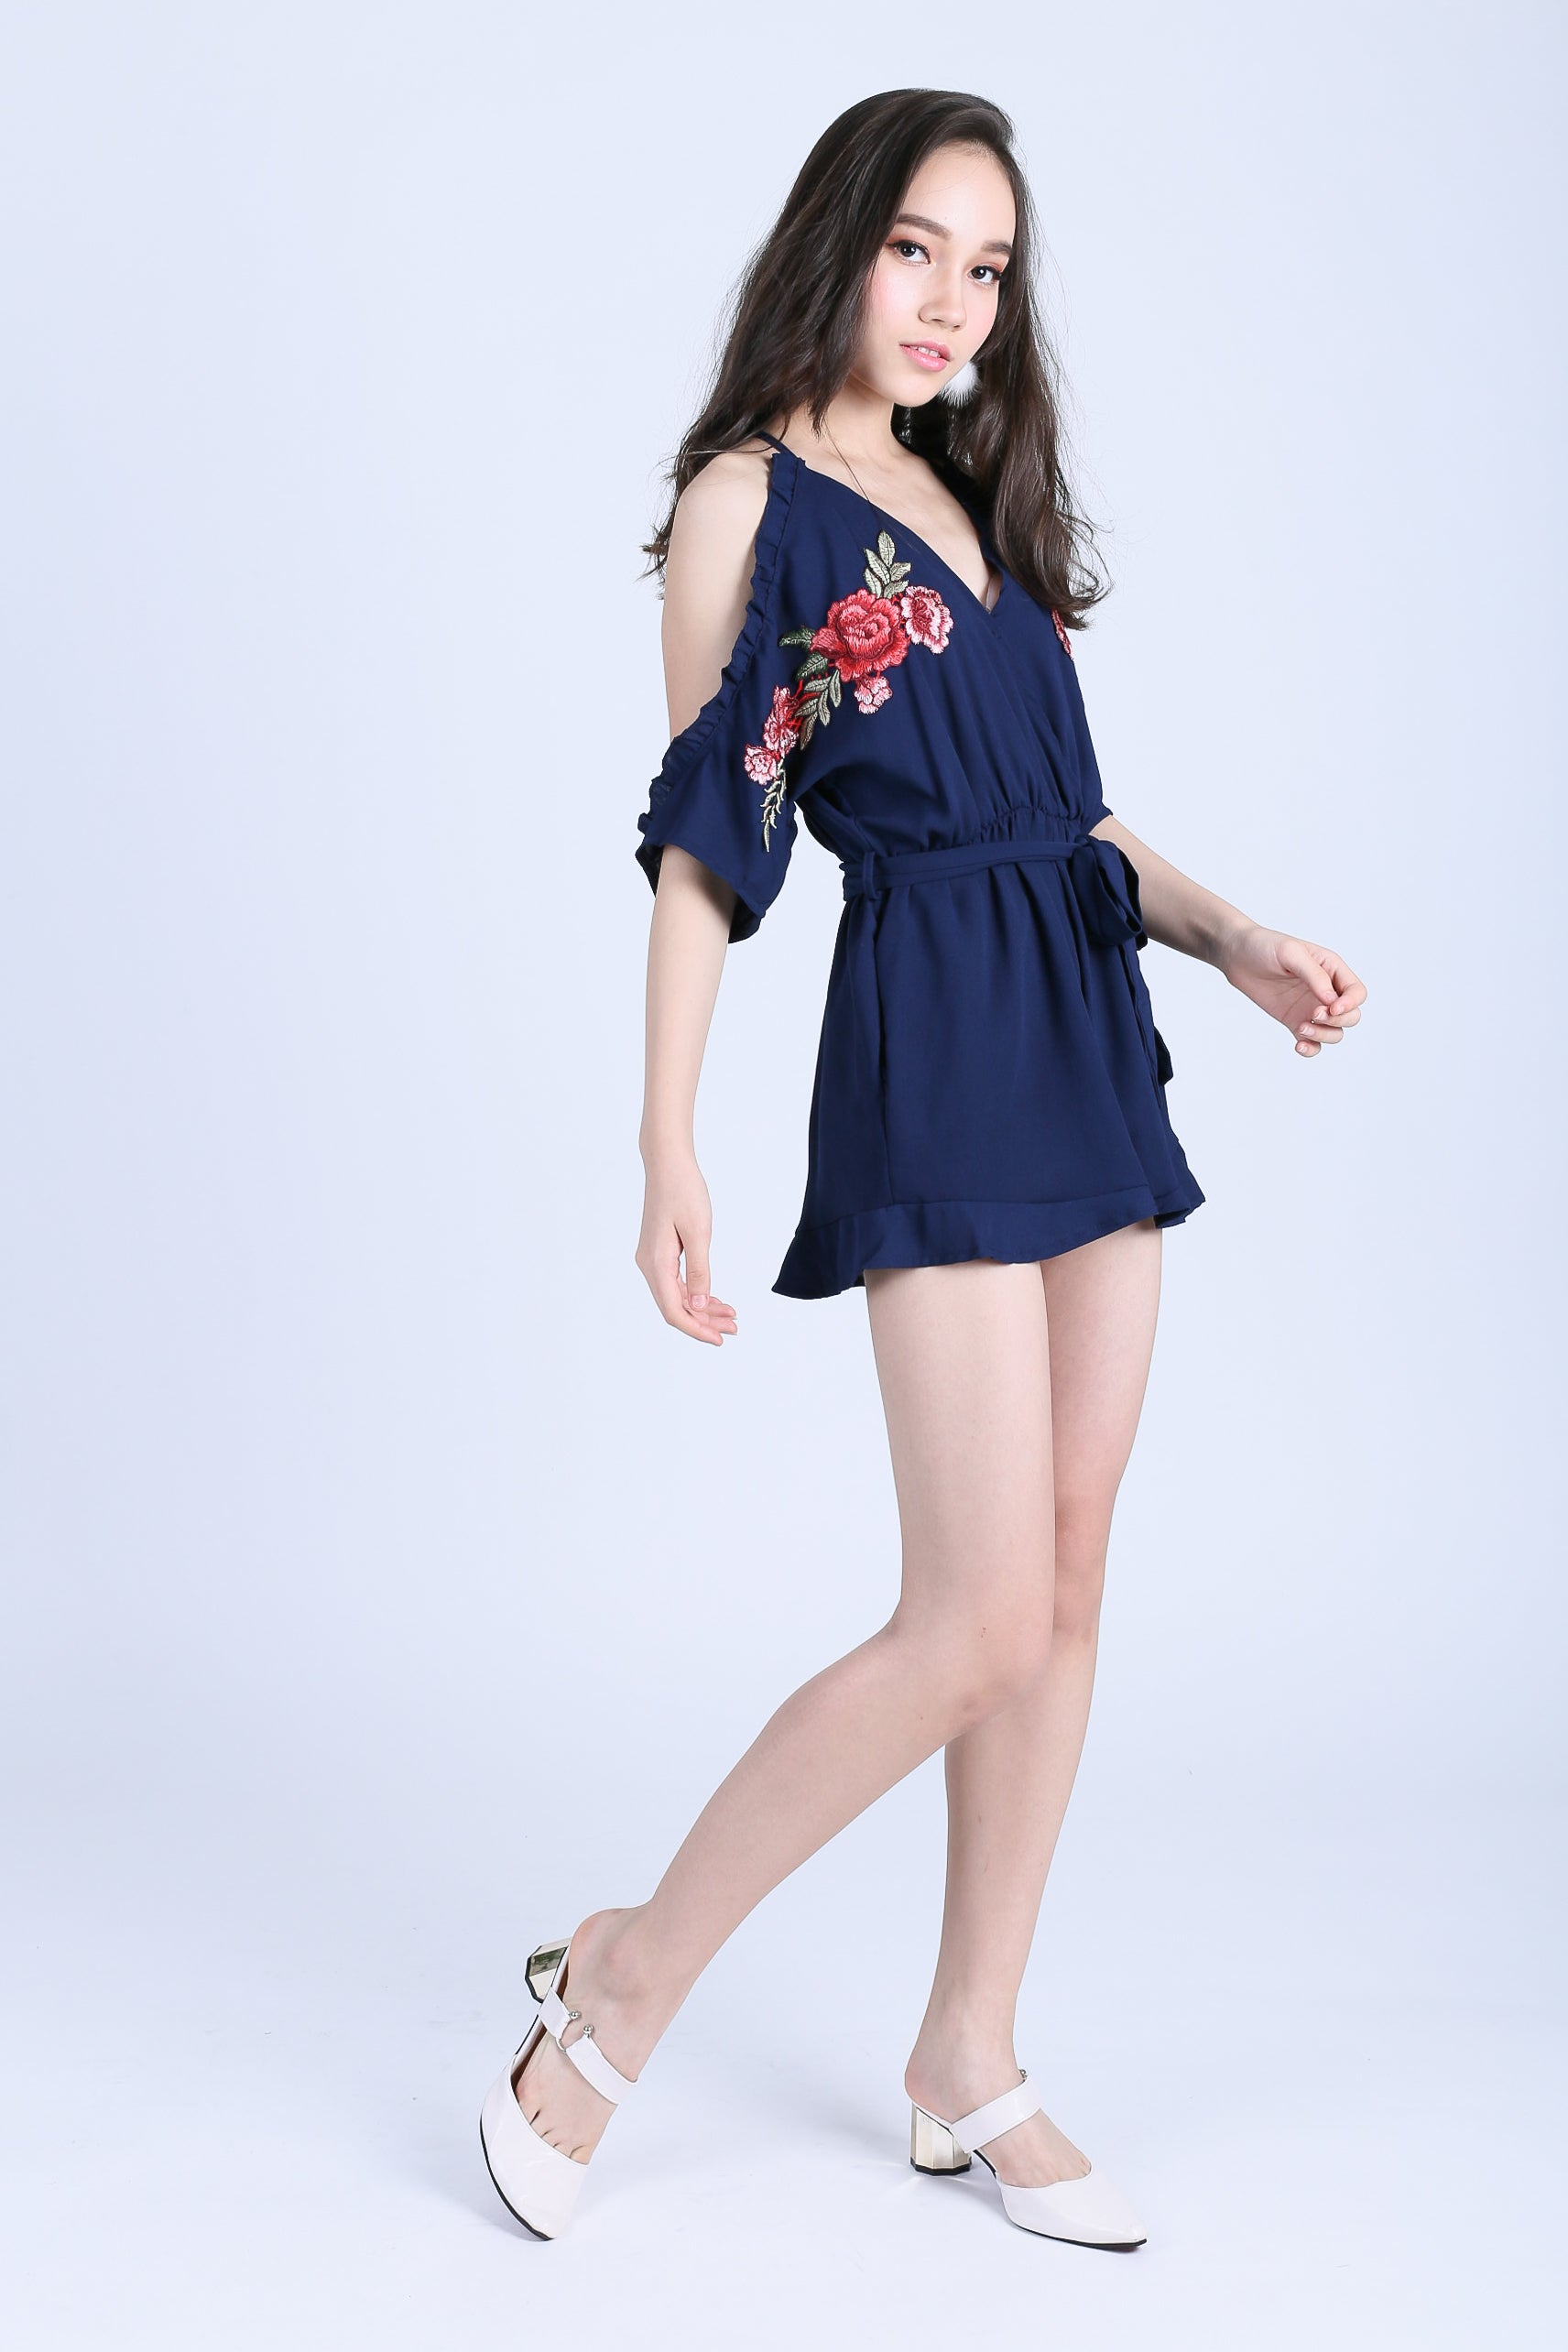 LOVELLE ROSE EMBROIDERY ROMPER IN NAVY